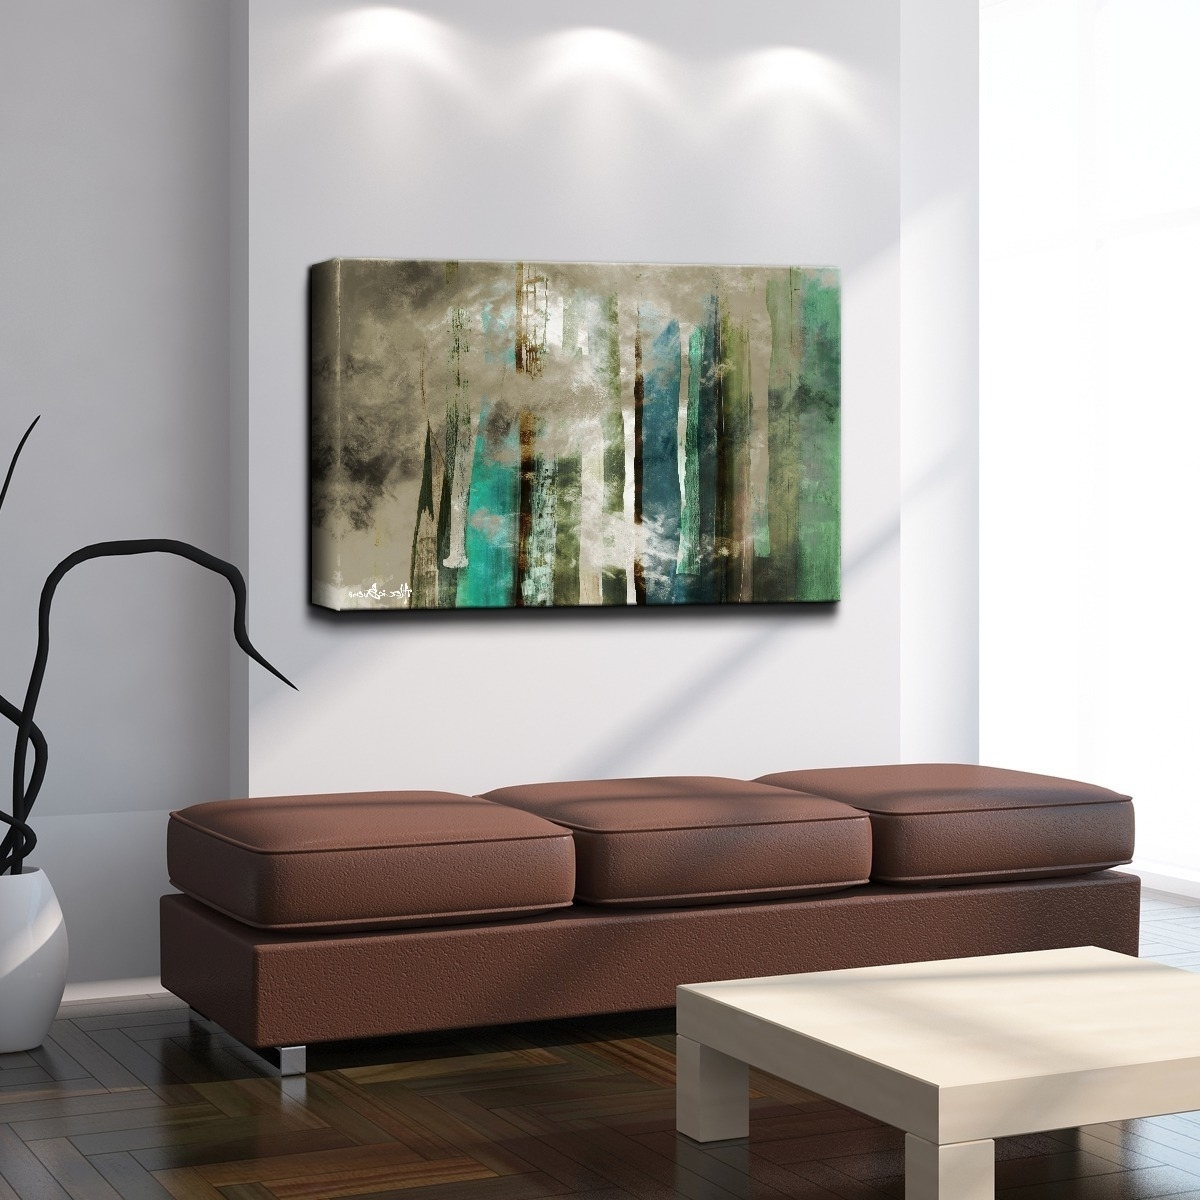 Shop Ready2Hangart 'smash Vi' Oversized Canvas Wall Art – Blue Intended For Best And Newest Cheap Oversized Canvas Wall Art (View 5 of 15)